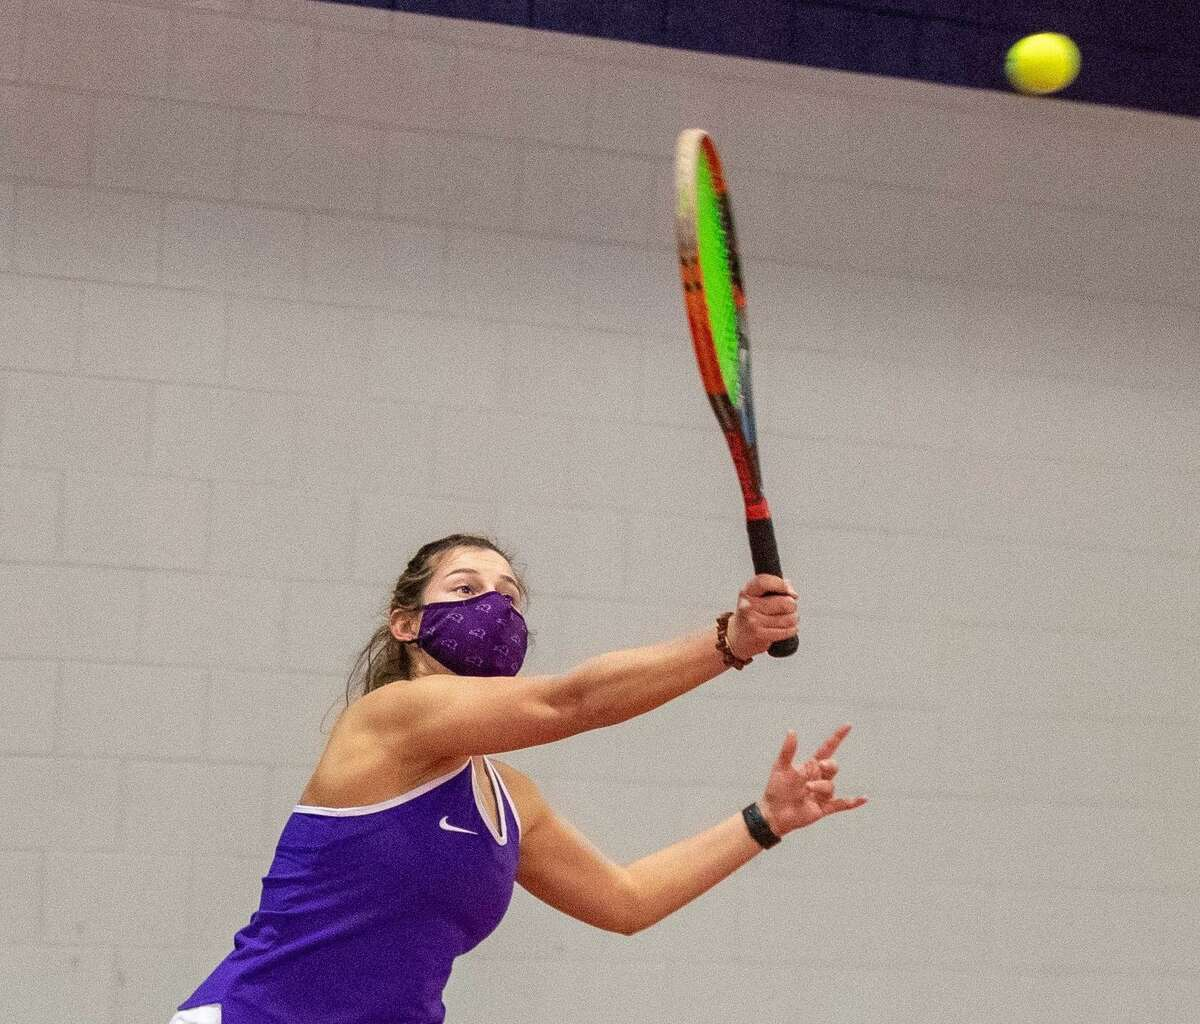 Zoe Rogers is in her first season playing tennis at St. Michael's College.